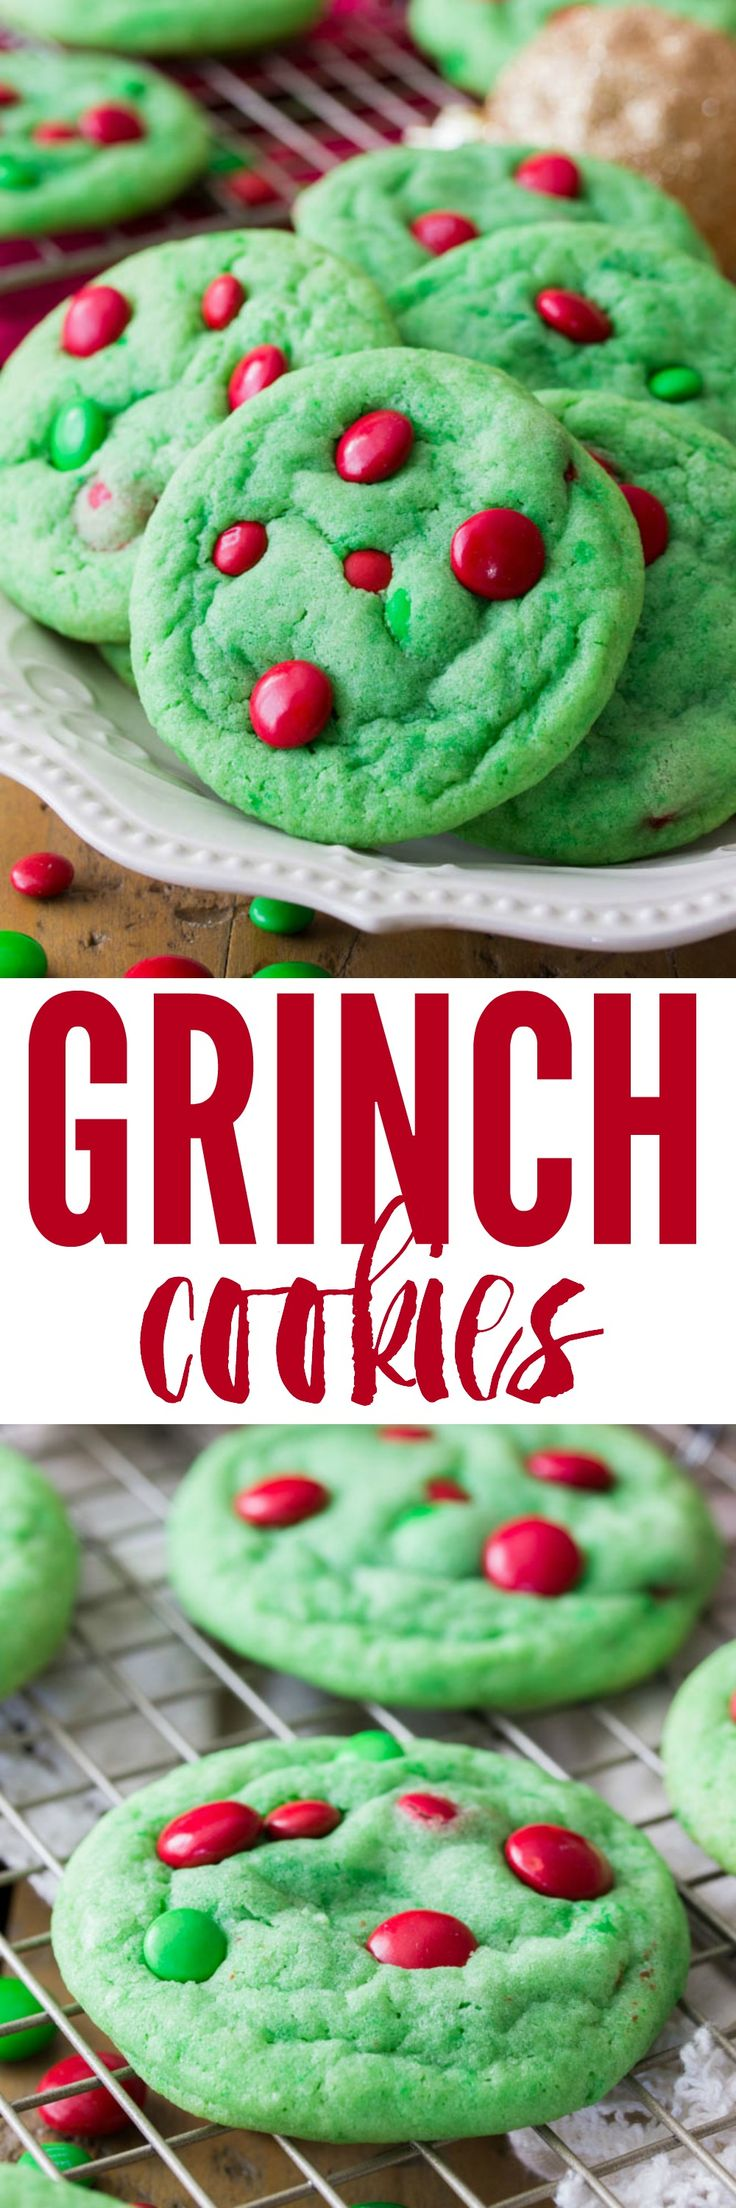 Despite their name, these Grinch Cookies are just about as festive and holiday-friendly as can be! These soft and chewy cookies are colored Grinch-green and decorated with milk chocolate candy pieces.